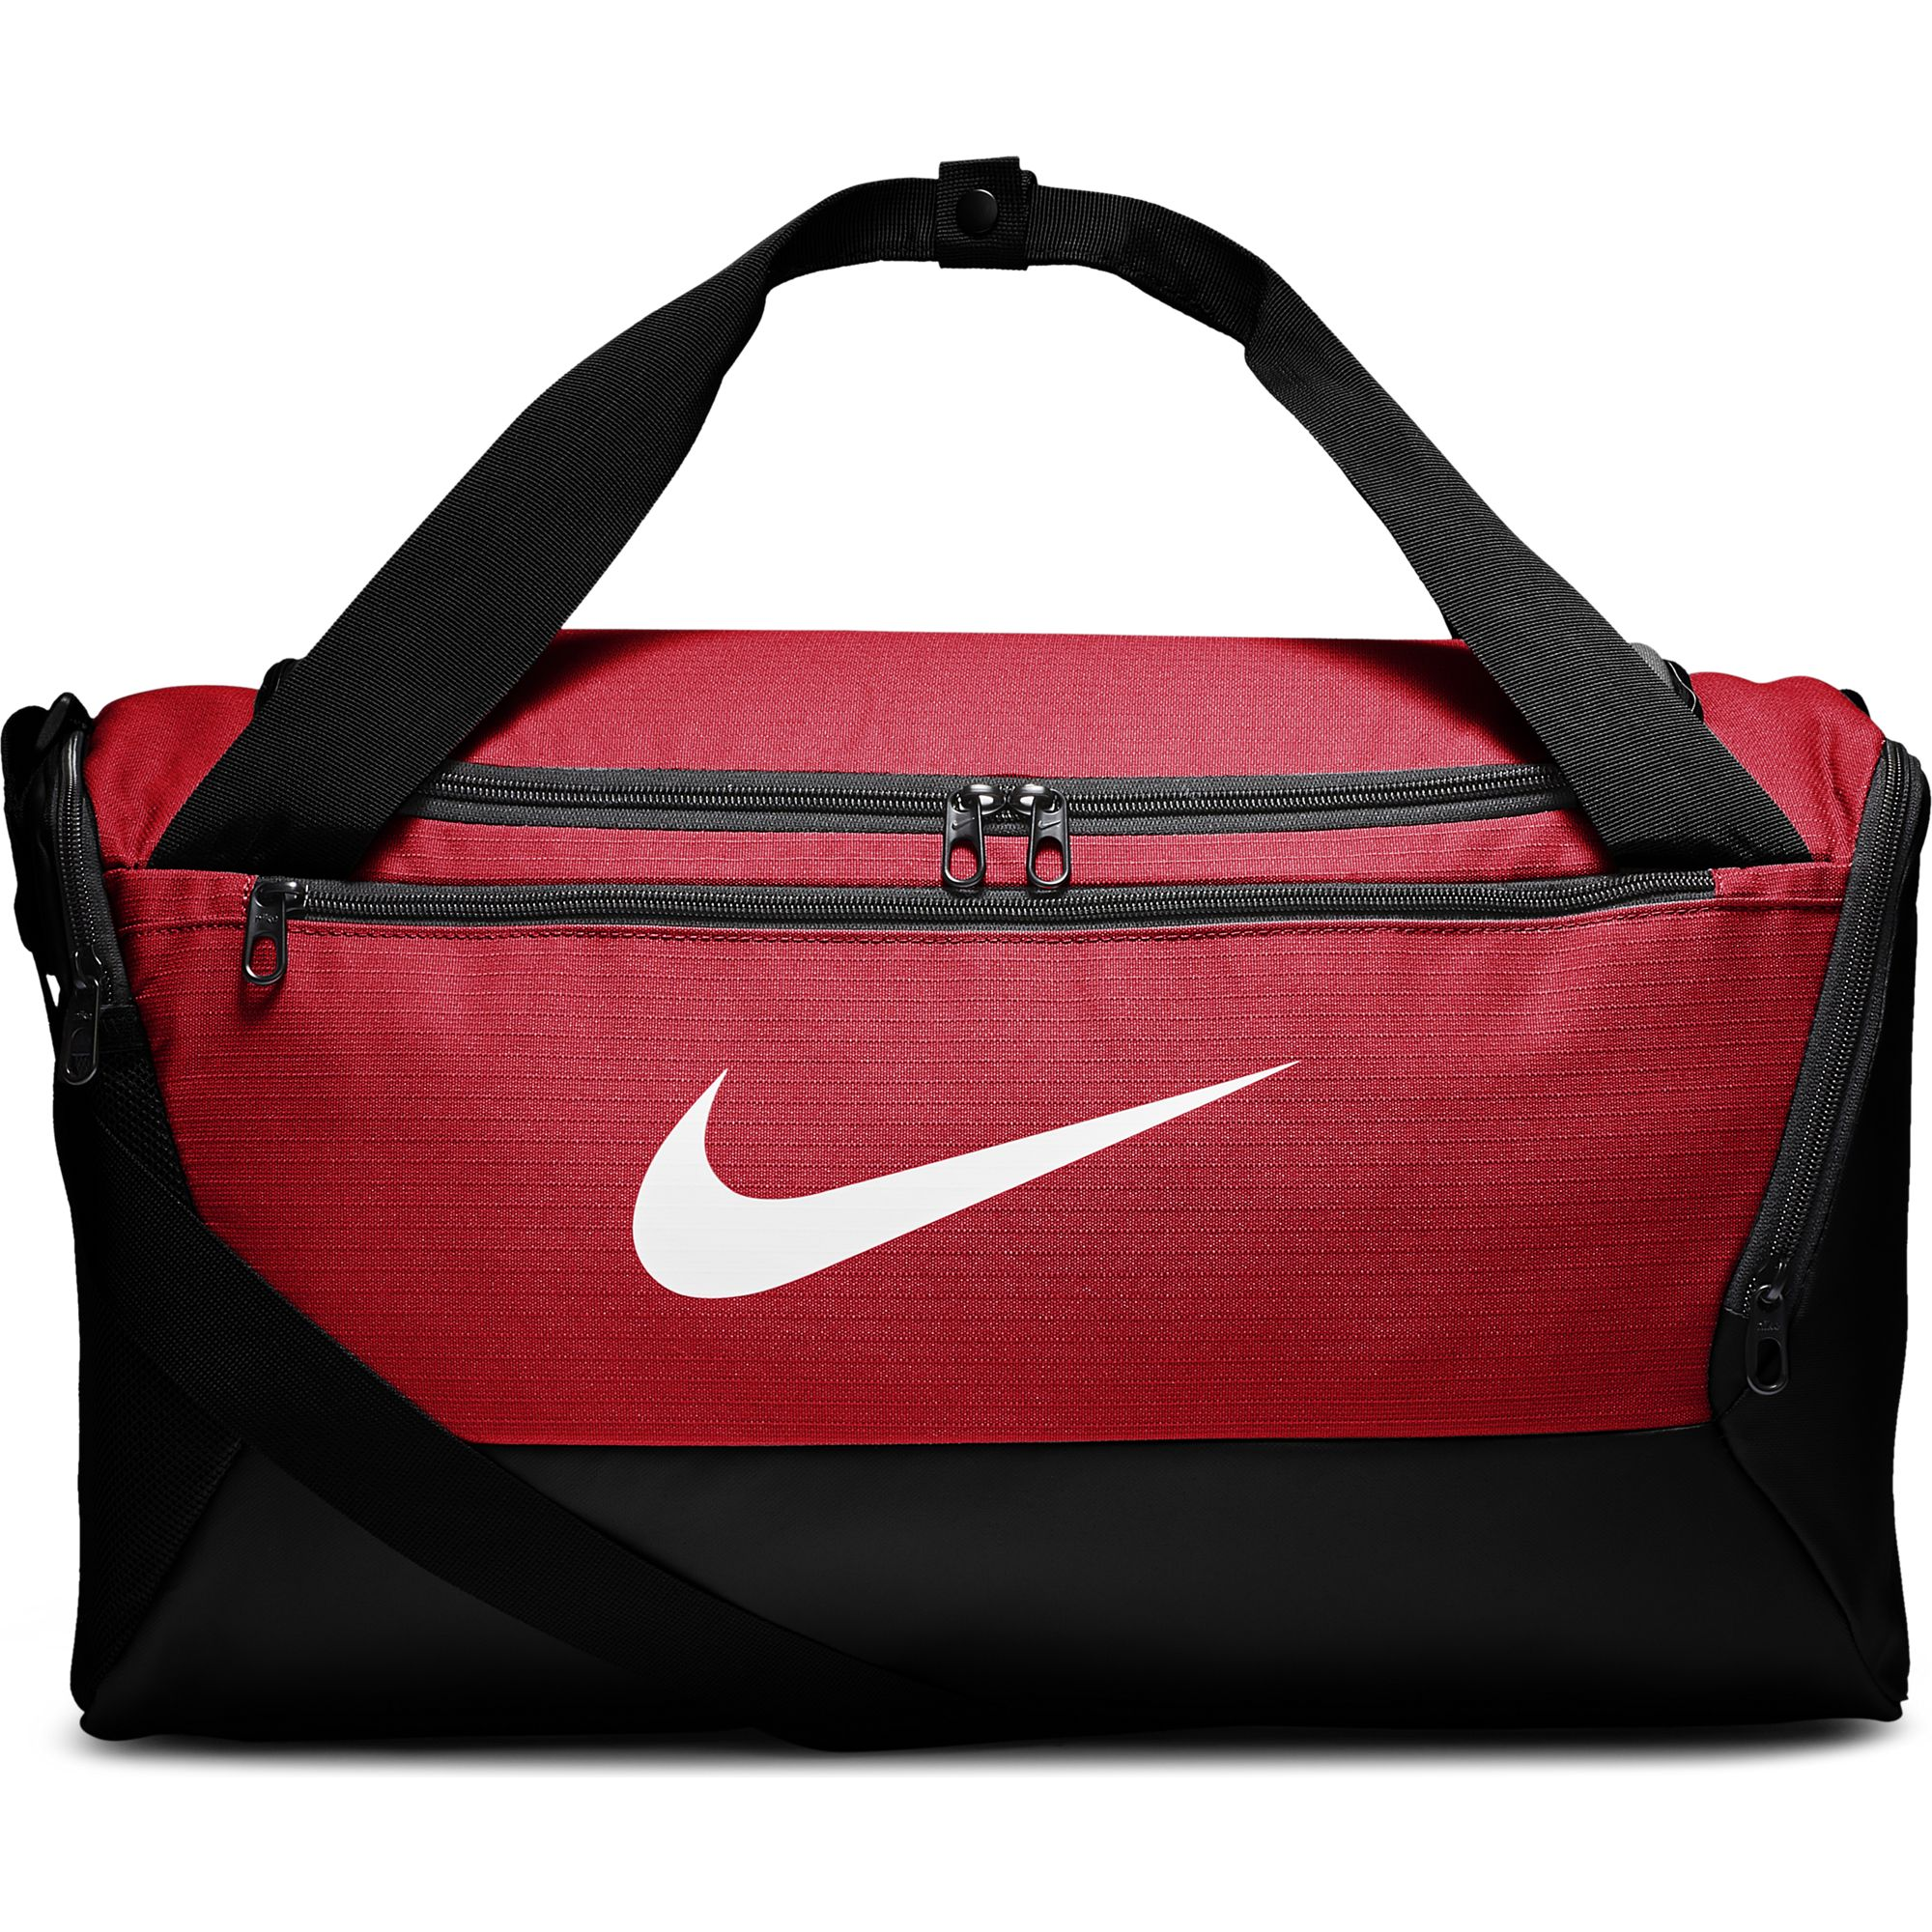 Brasilia Small Training Duffell Bag, Red/Black, swatch